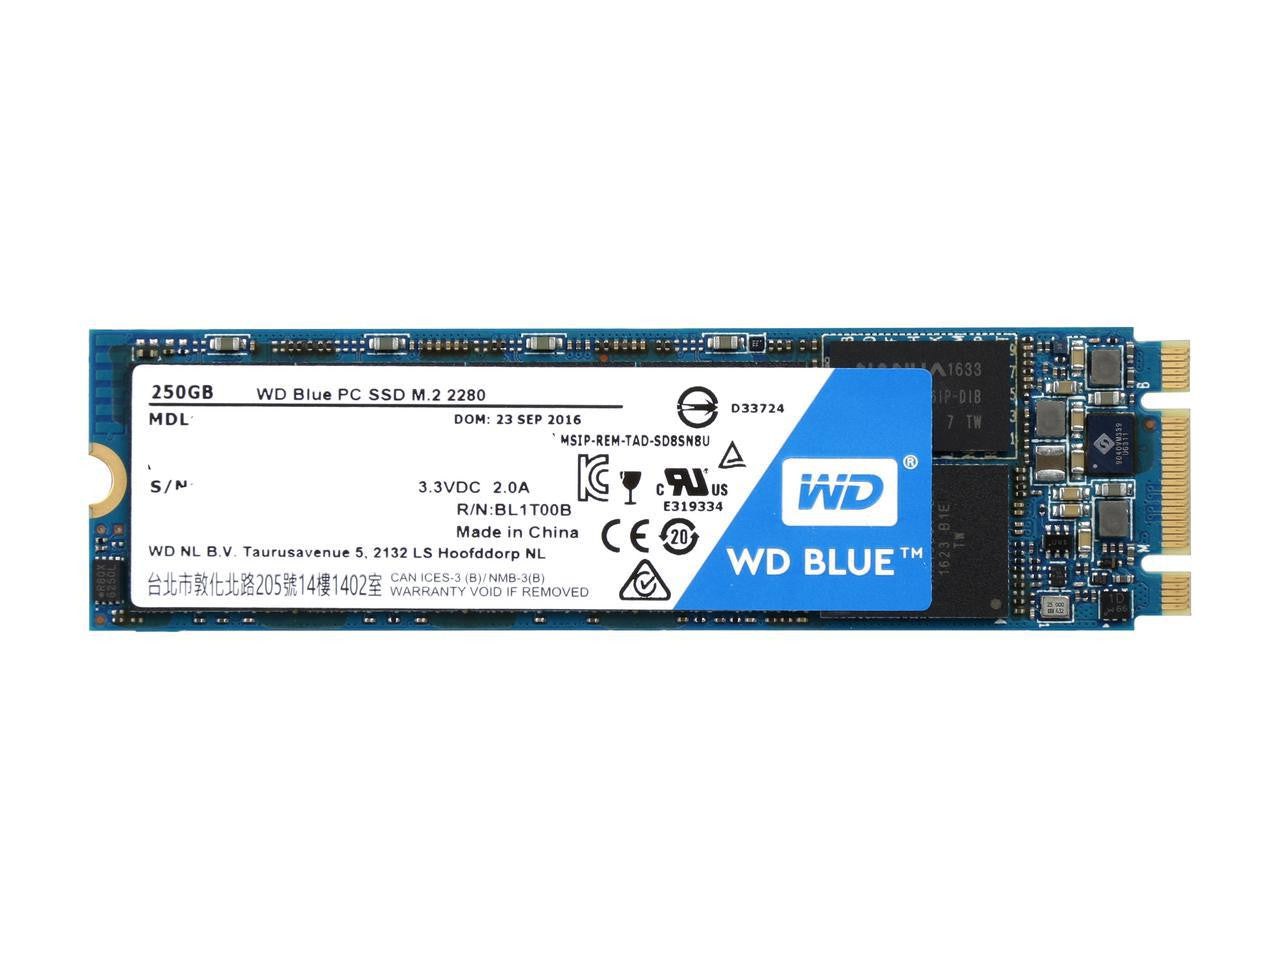 Wd Blue M2 250gb Internal Ssd Solid State Drive Wds250g1b0b Hardisk Pc 250 Gb Seagate Sata